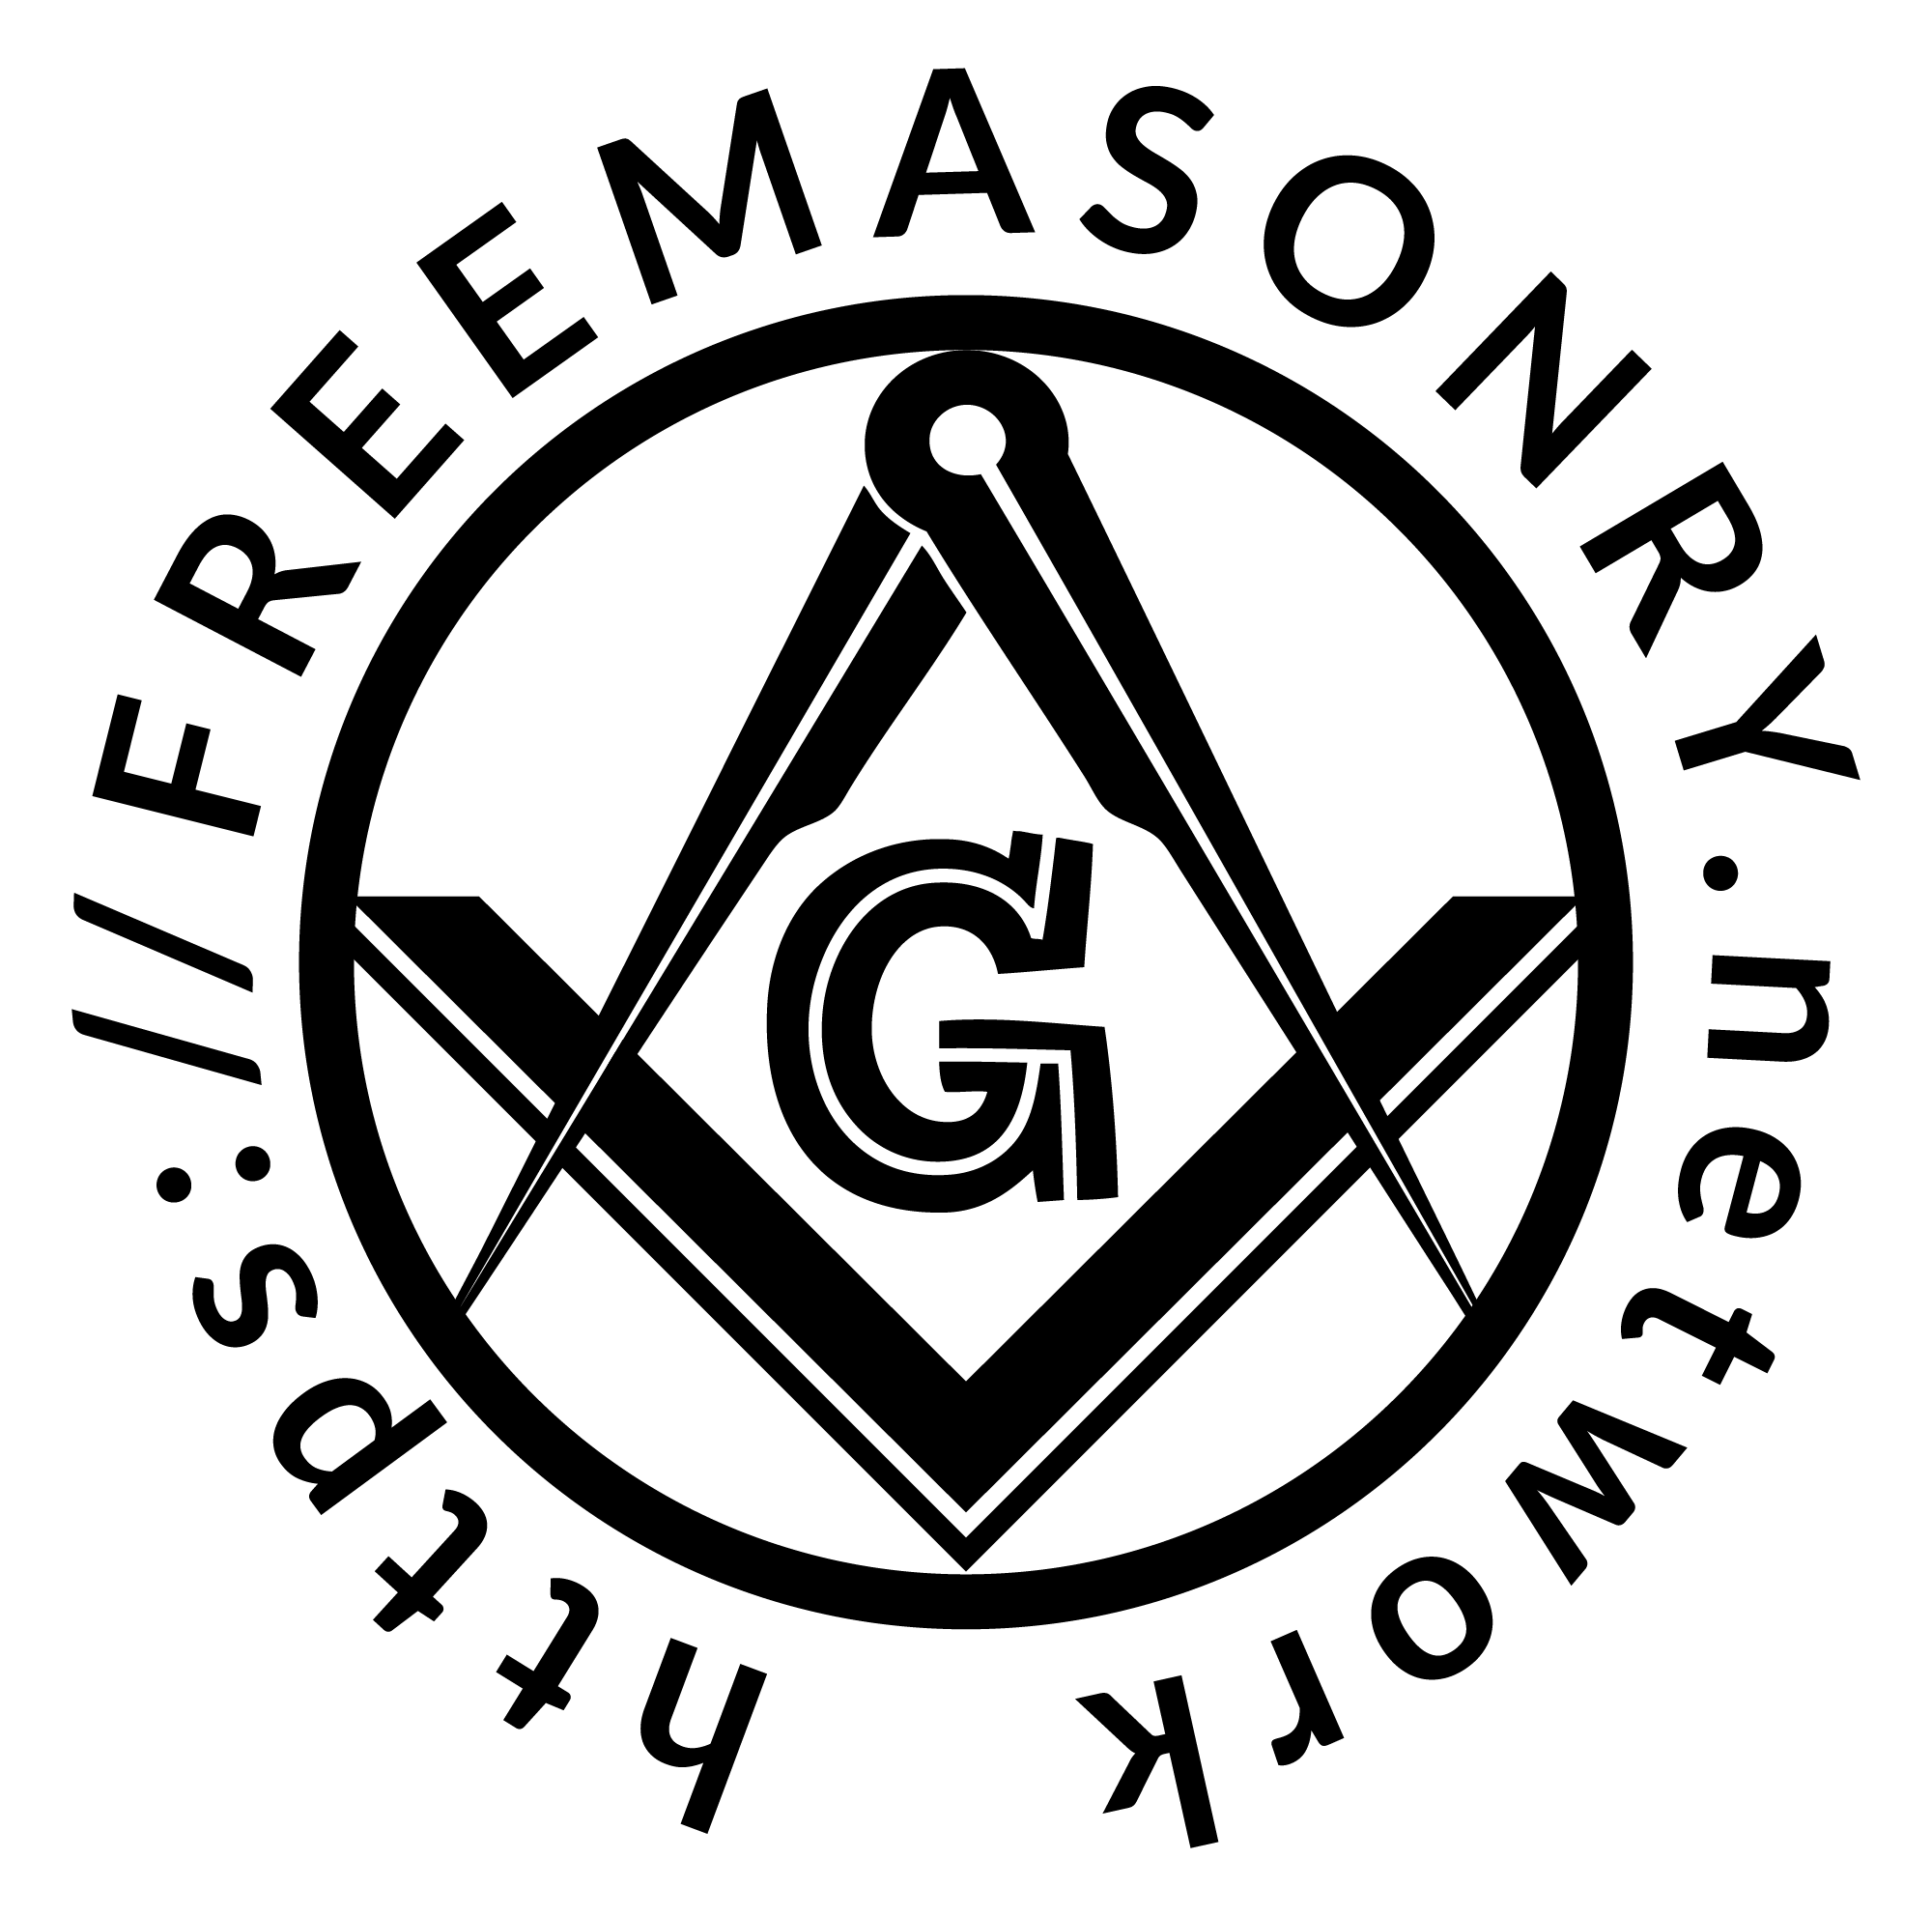 FREEMASONRY IN BRITISH EMPIRE